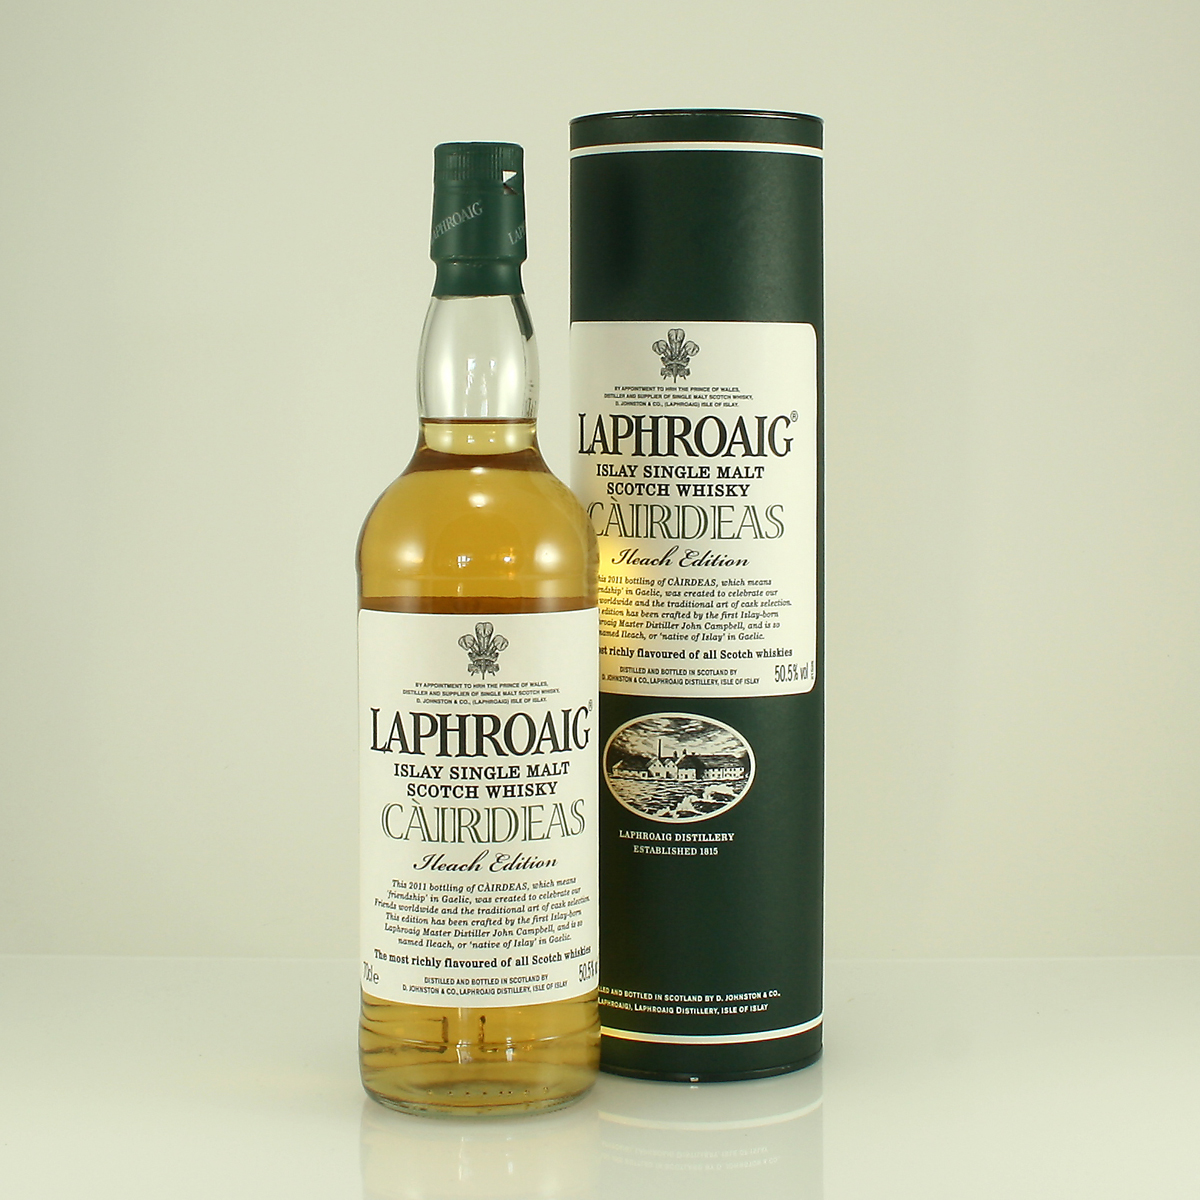 LAPHROAIG Cairdeas Ileach Edition 50.5% 70cl